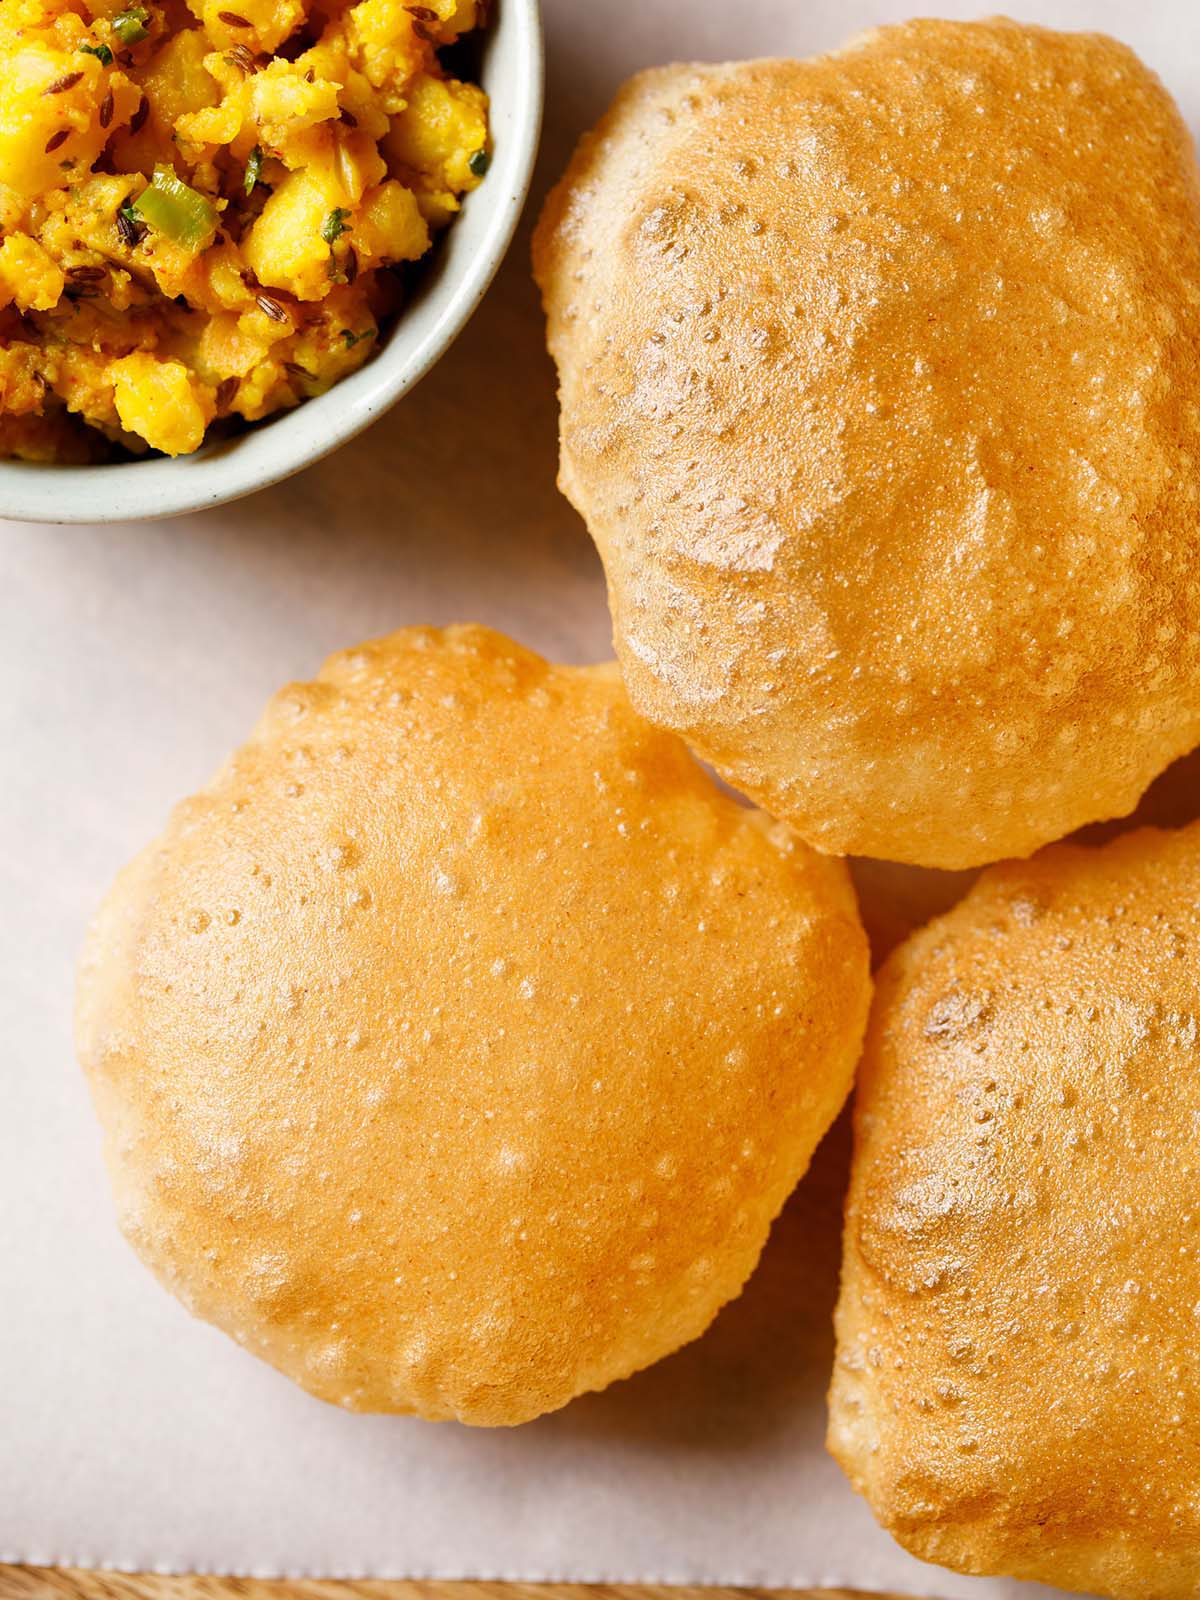 homemade puri placed on parchment paper with a side bowl of spiced sautéed Indian potato dish